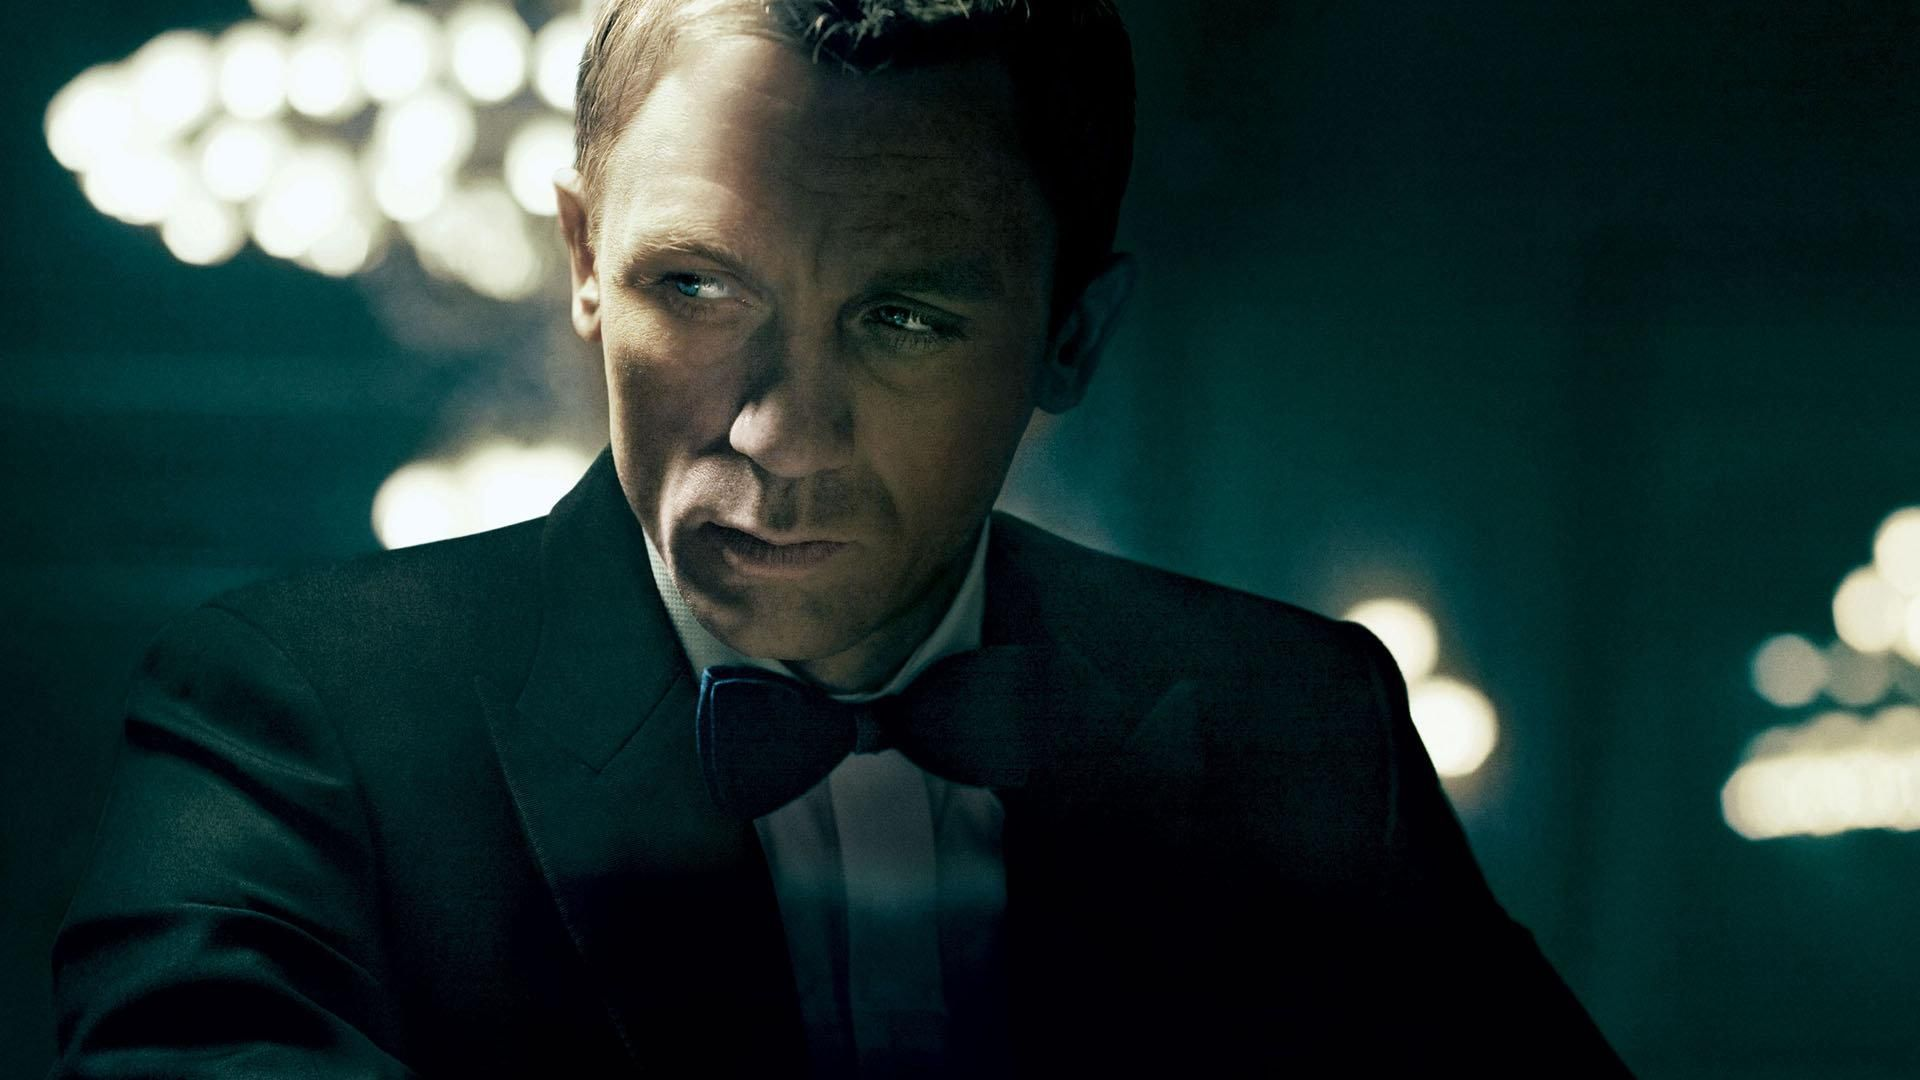 007 picture hd